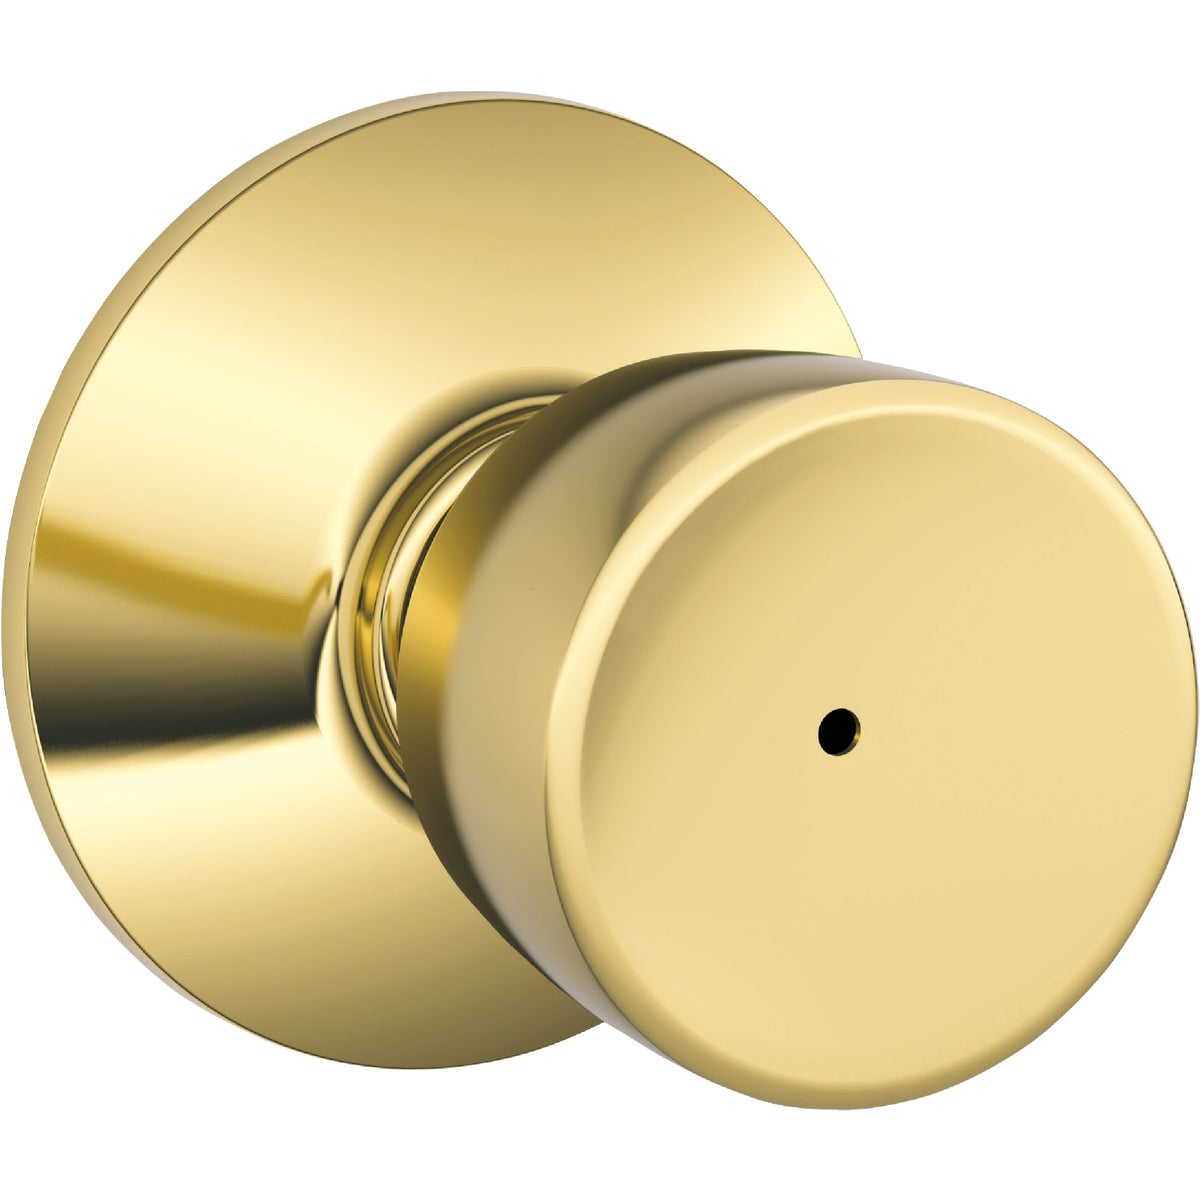 PB BELL PRIVACY KNOB BX - F40BEL605 by Schlage Lock Co